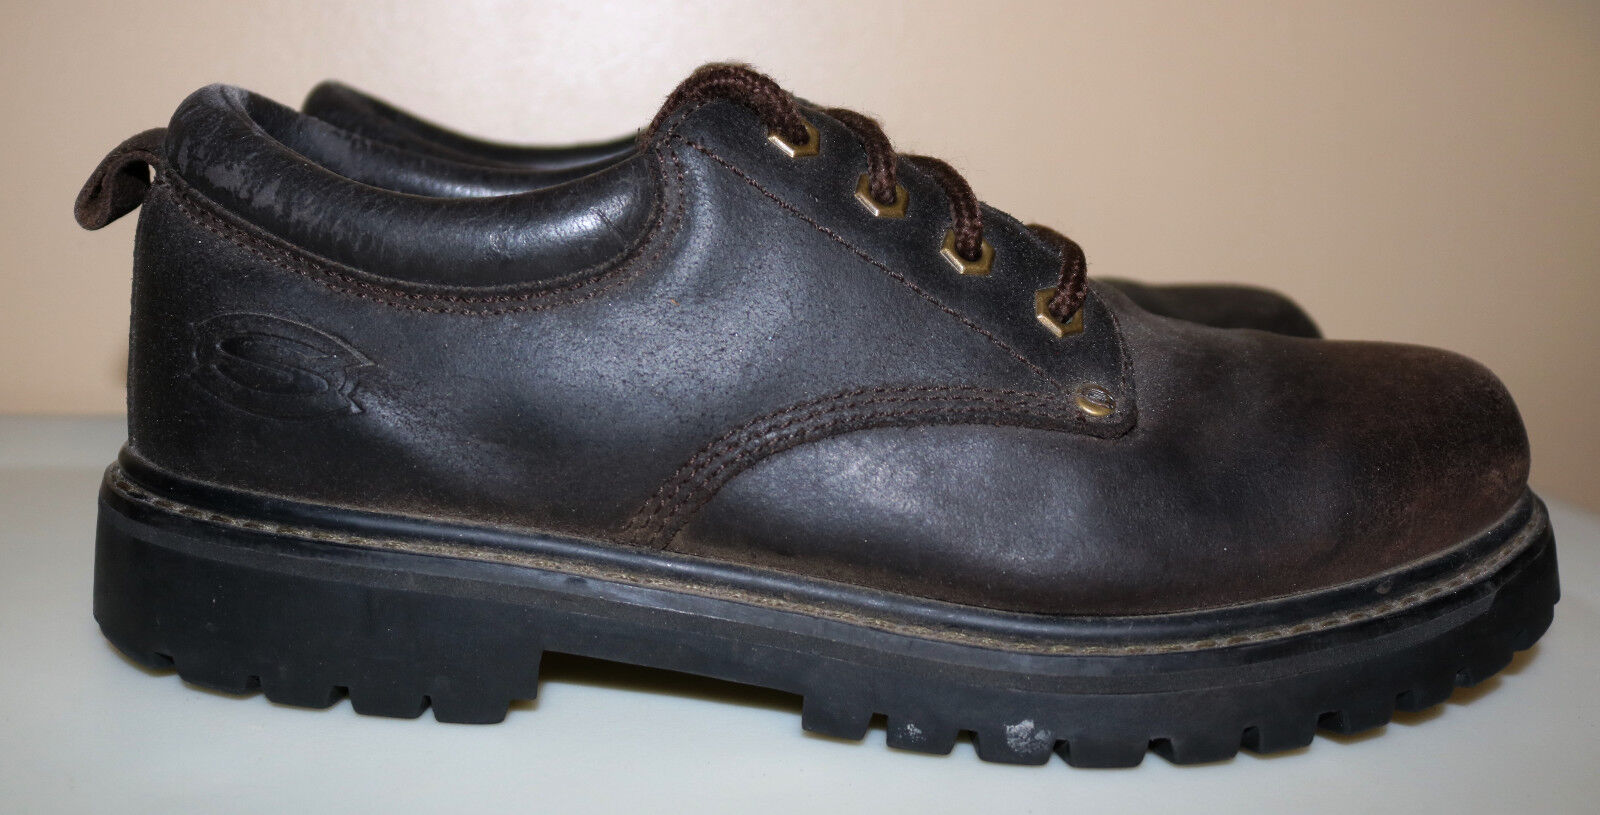 Skechers USA Men's Brown Alley Cat Casual Oxford Work Utility shoes Size 9